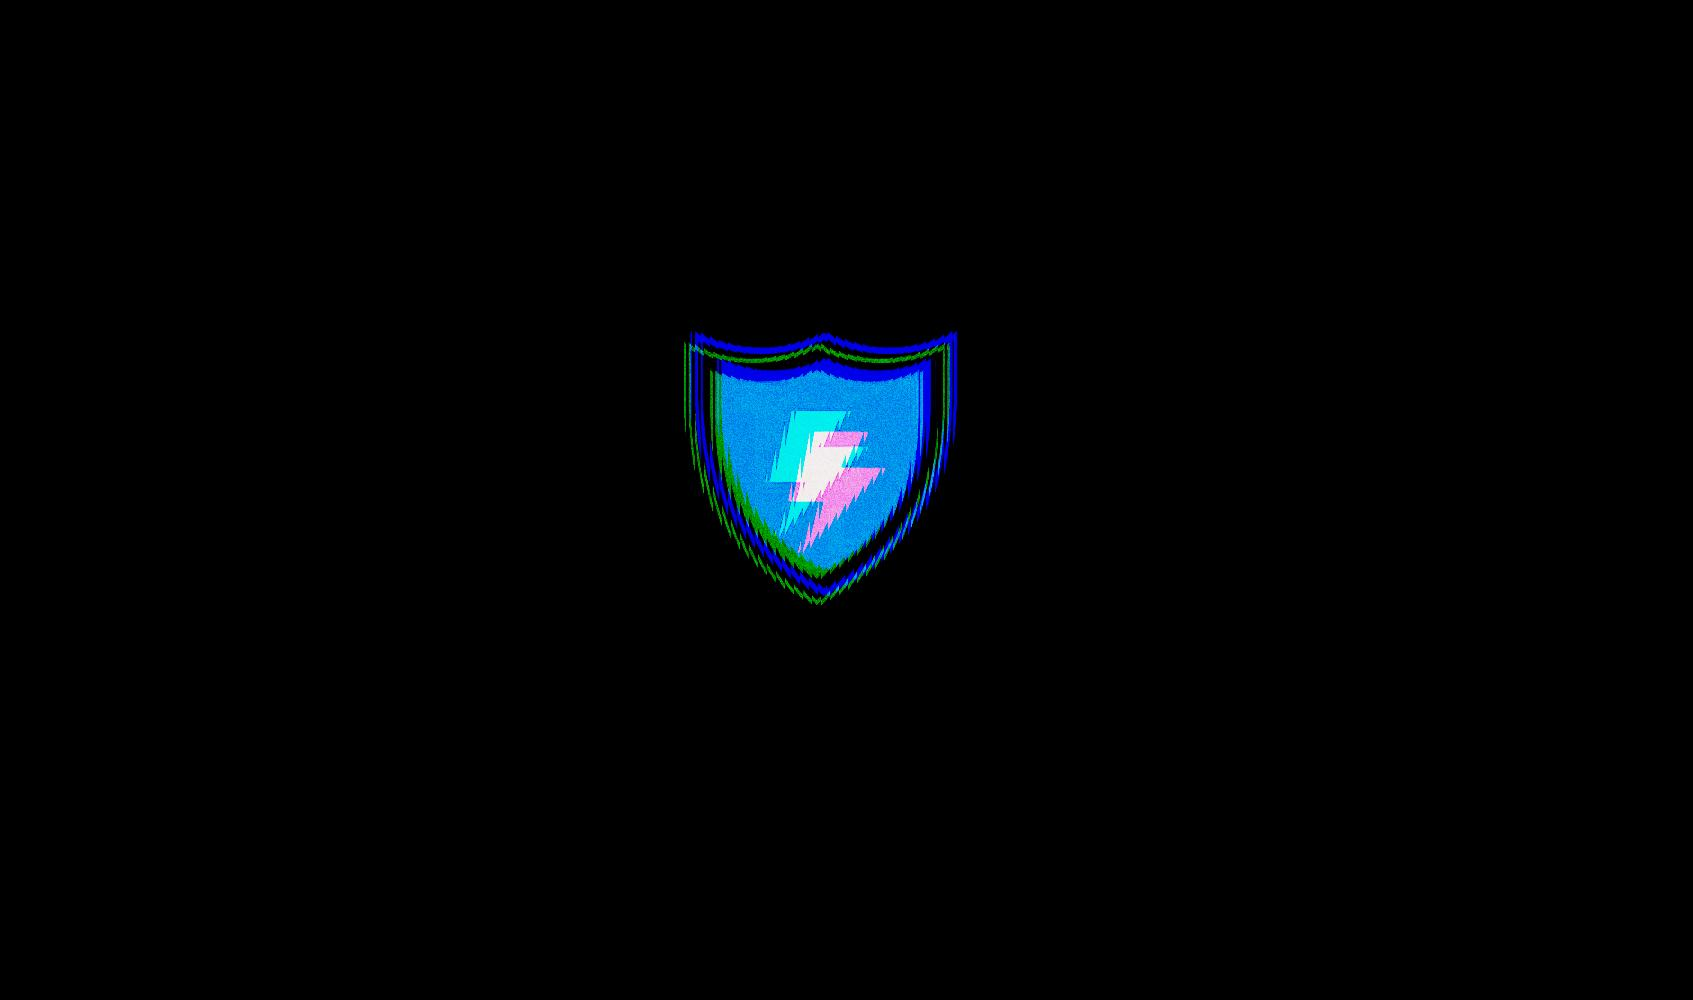 Microsoft Defender Advanced Threat Protection (ATP) For Linux & Android